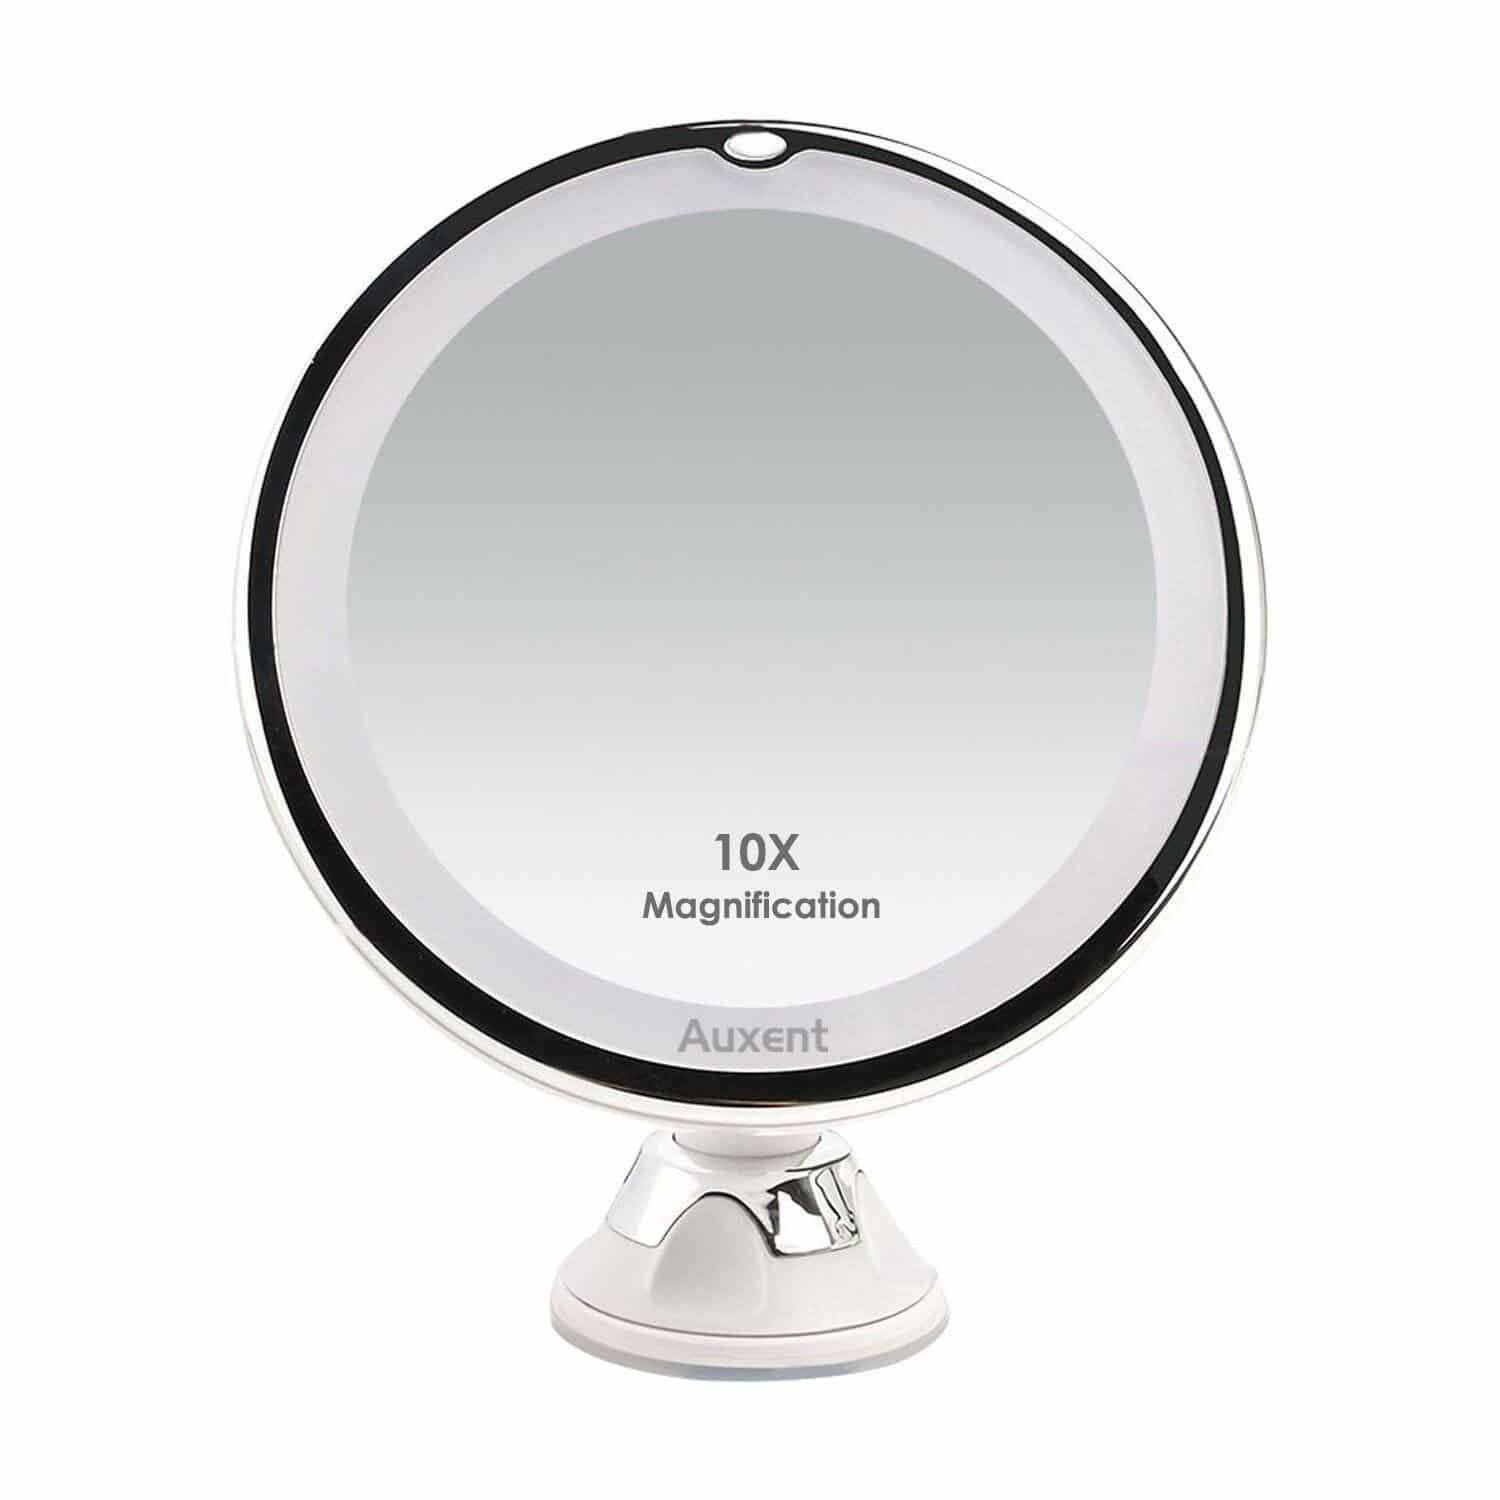 Top 10 Best Lighted Makeup Mirrors In 2020 Most Review With Images Makeup Mirror With Lights Led Makeup Mirror Makeup Mirrors